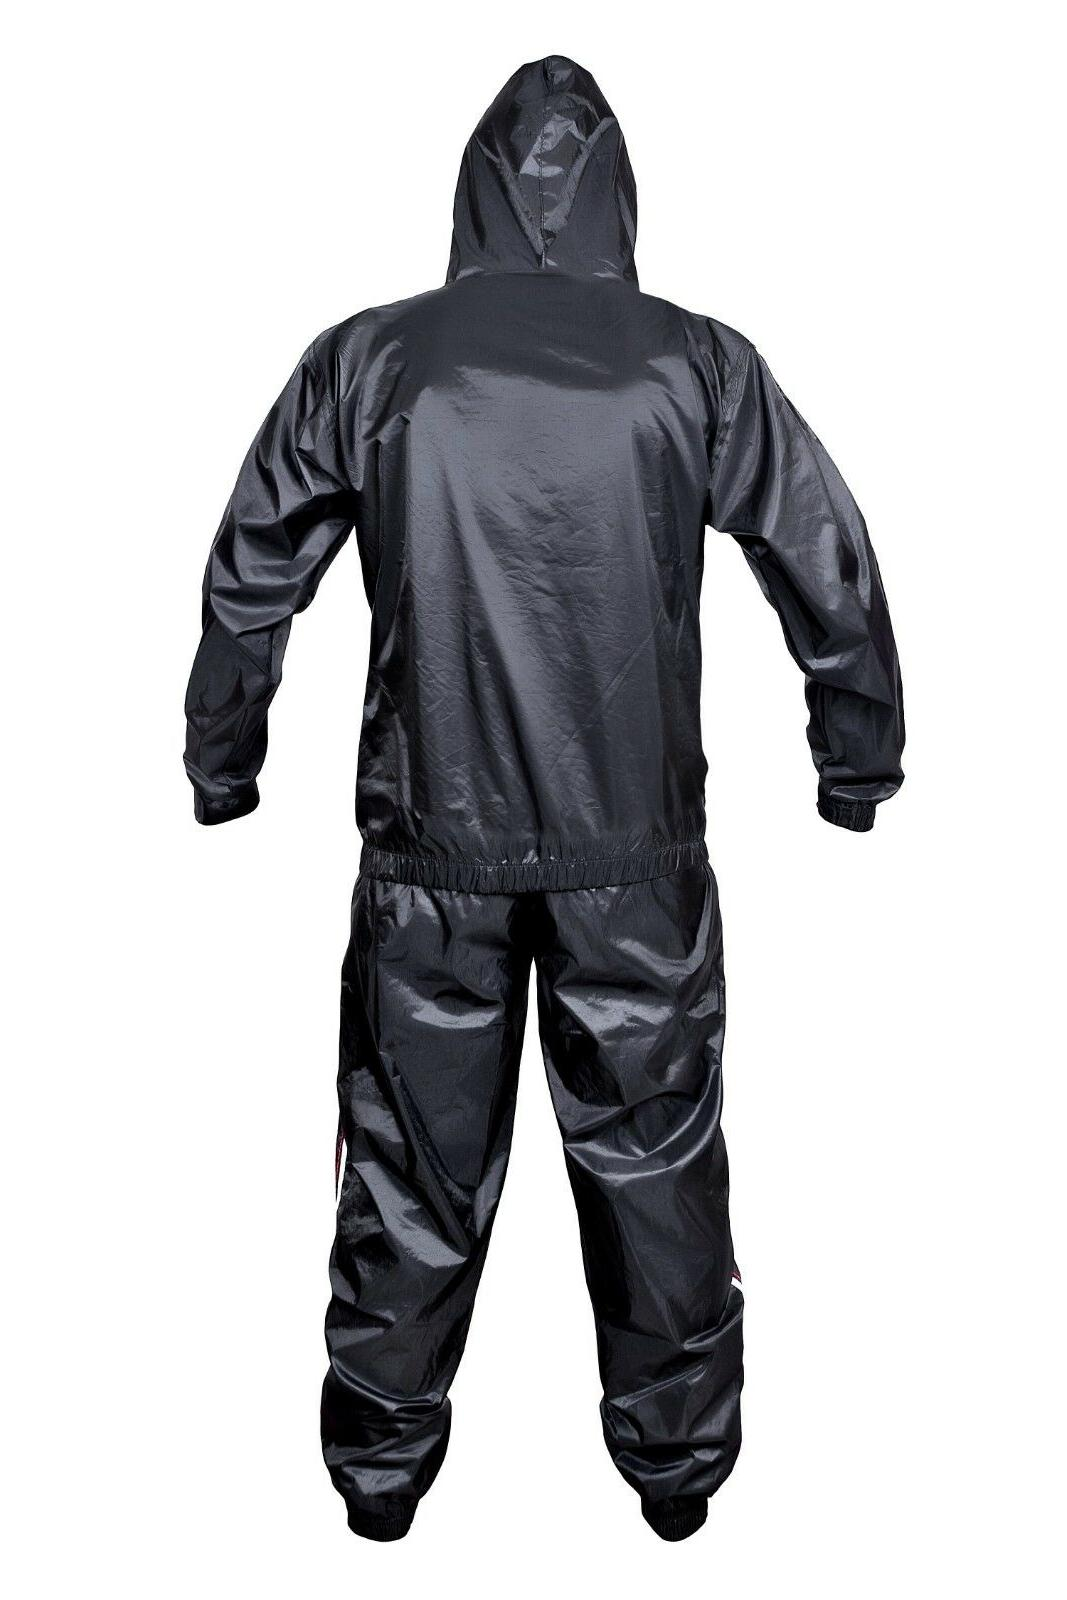 Heavy Sauna Sweat Suit Exercise Gym Suit Fitness Weight